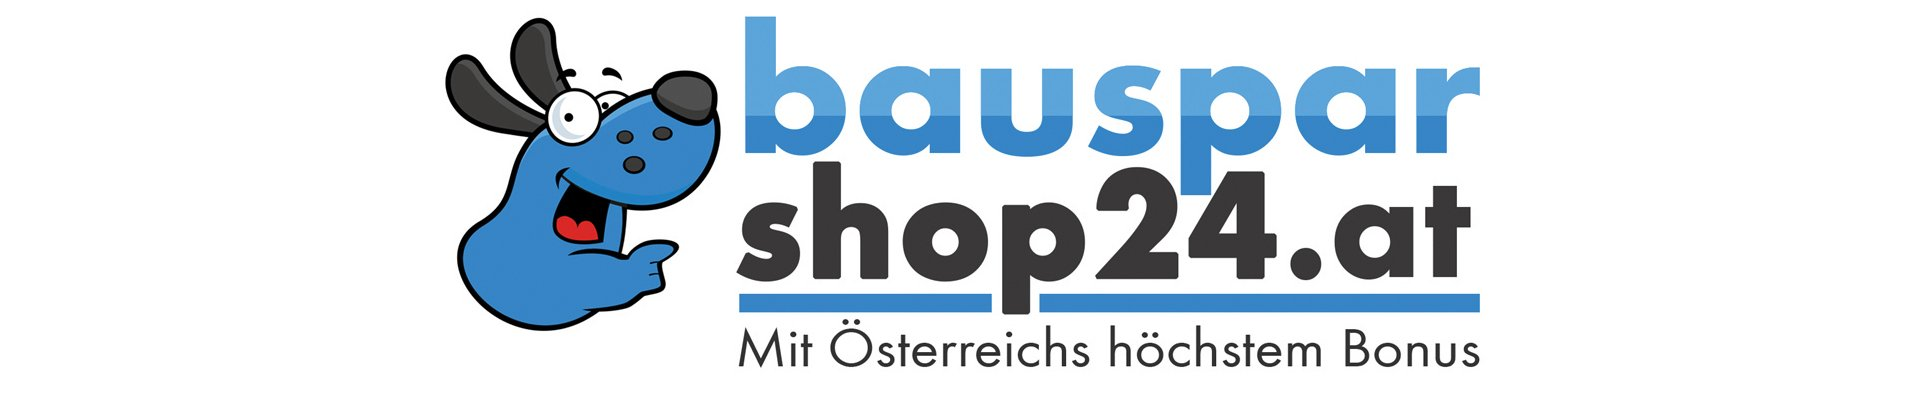 Logo Bausparshop24.at